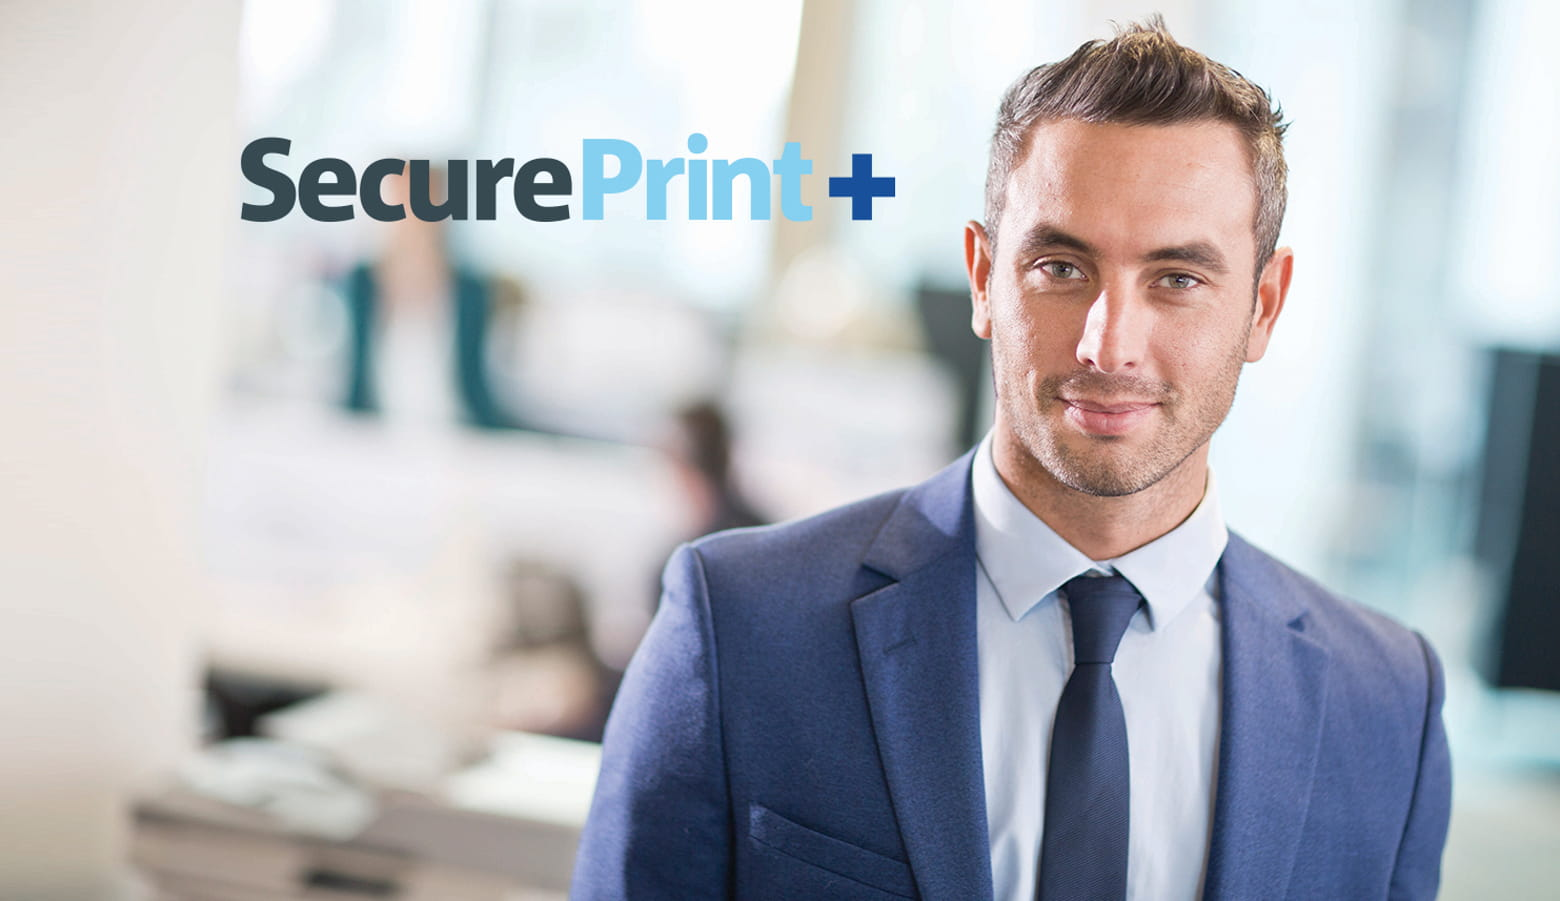 SecurePrint+